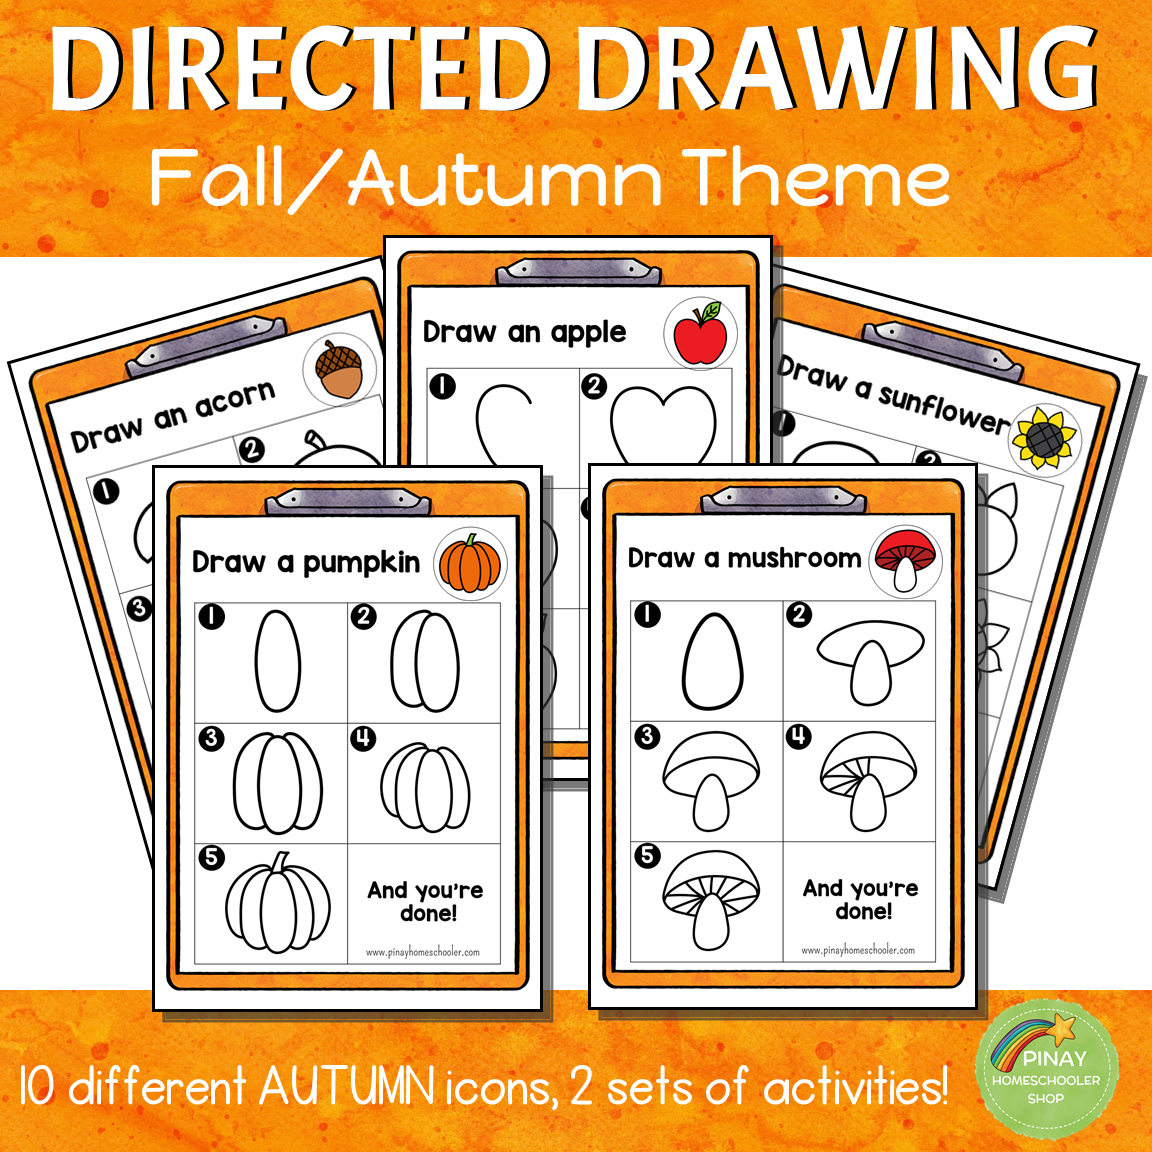 Directed Drawing - Autumn Theme